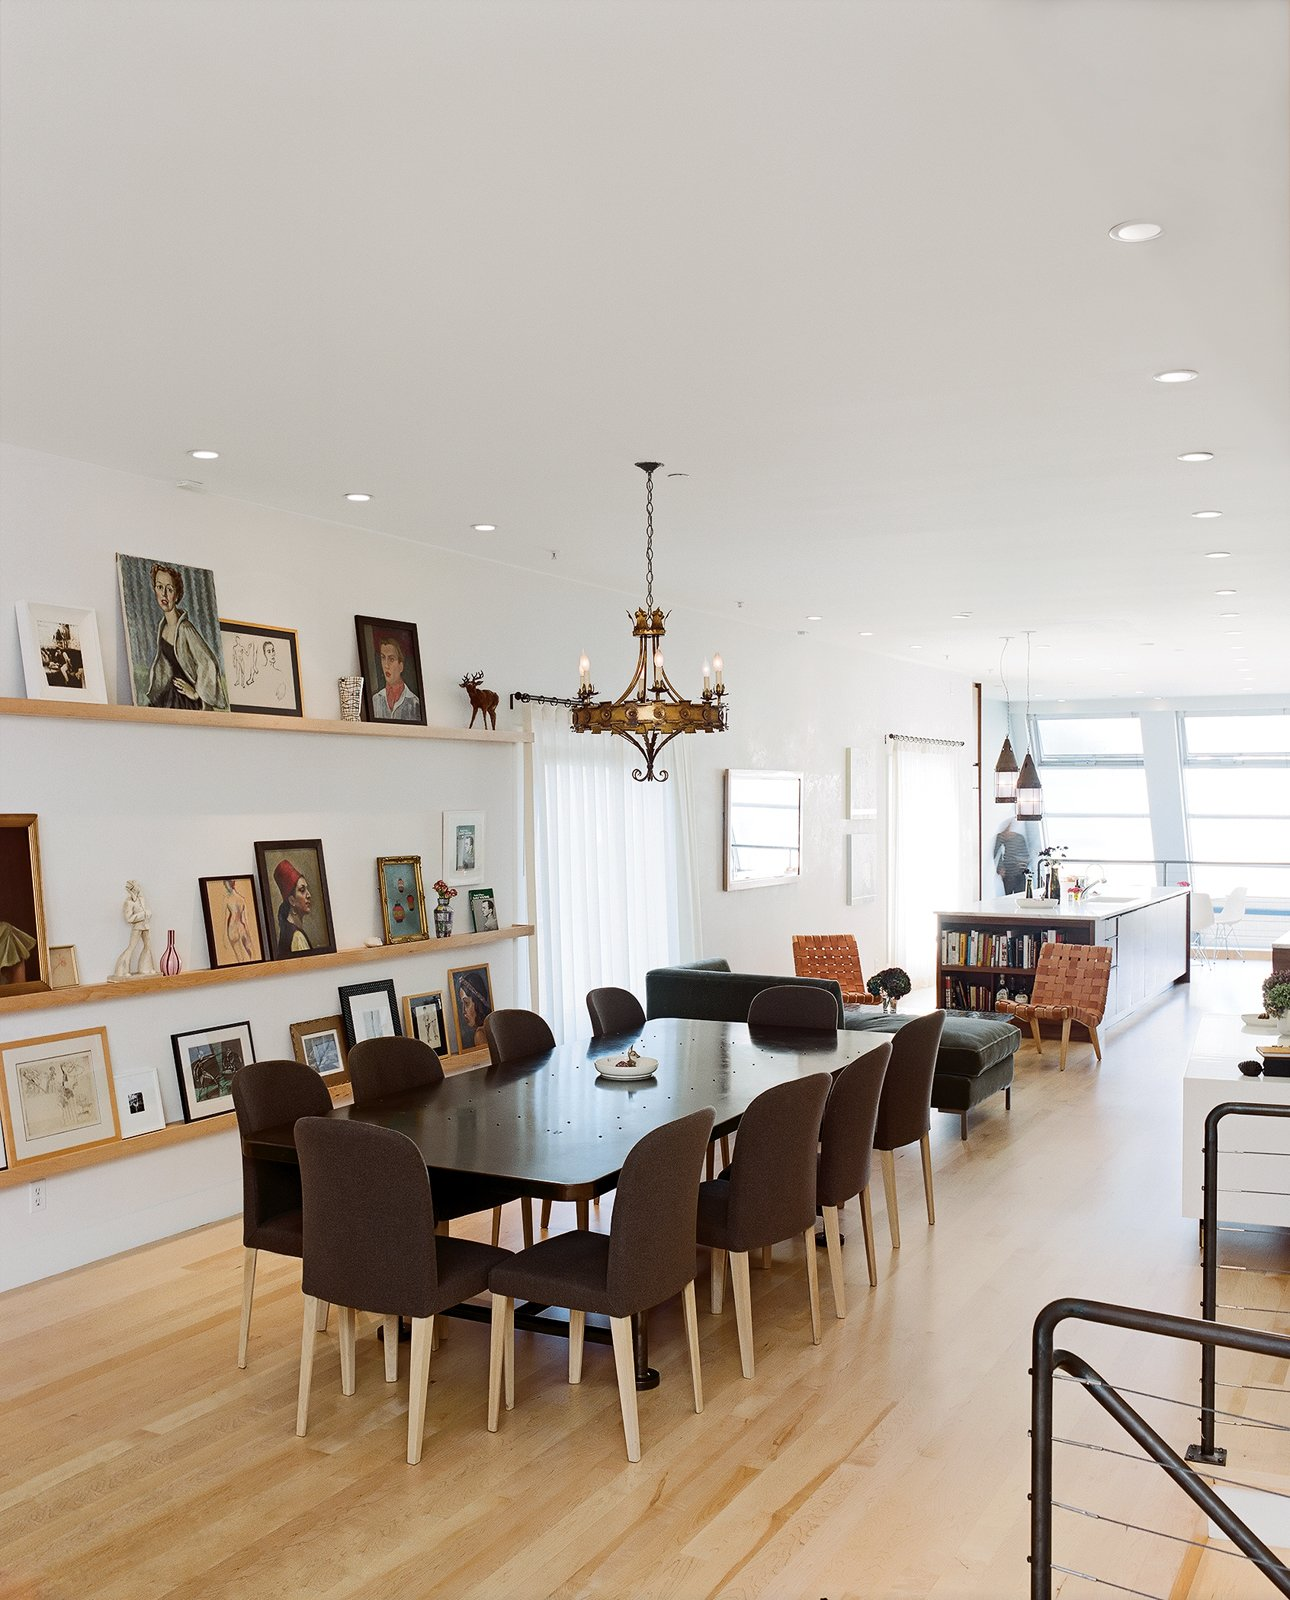 """Molteni dining chairs are overseen by """"someone's"""" ancestral portraits. Tagged: Dining Room, Chair, Table, Shelves, and Pendant Lighting.  Photo 6 of 14 in Project Runaway"""